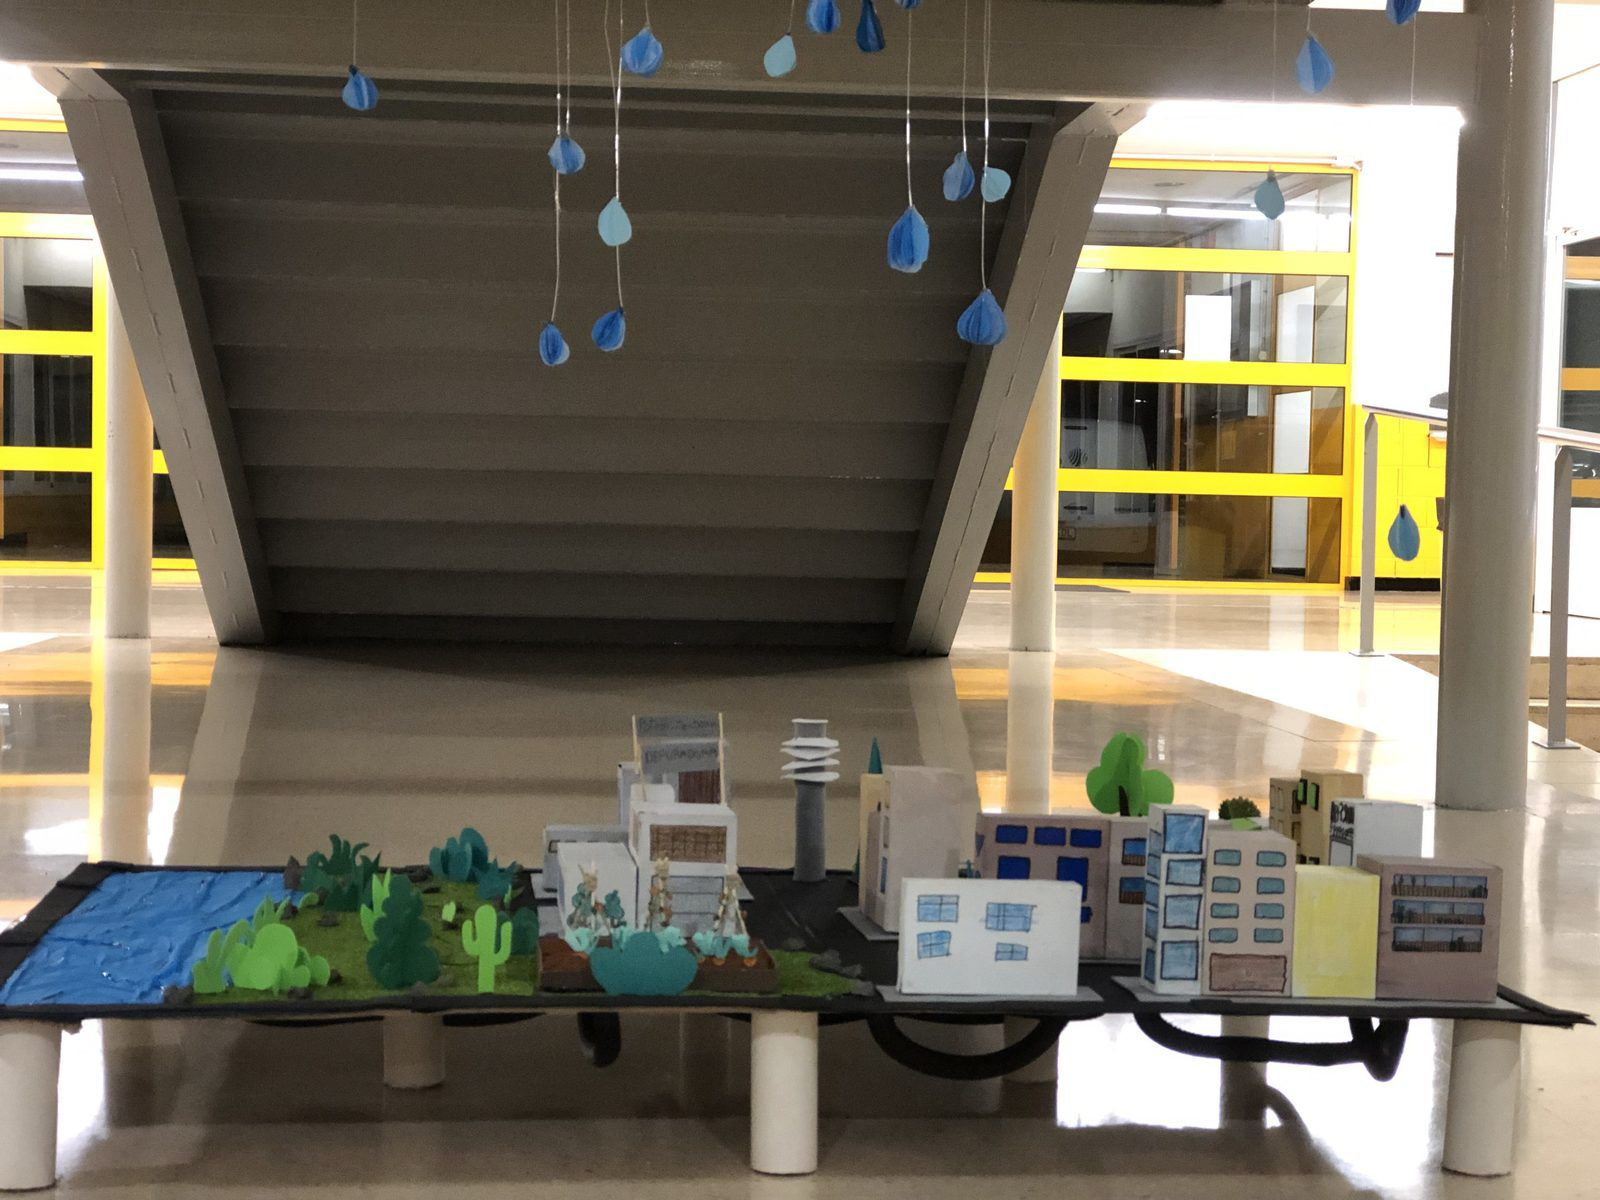 Model of the water cycle created by Martí Dot students exposed in the high school hall